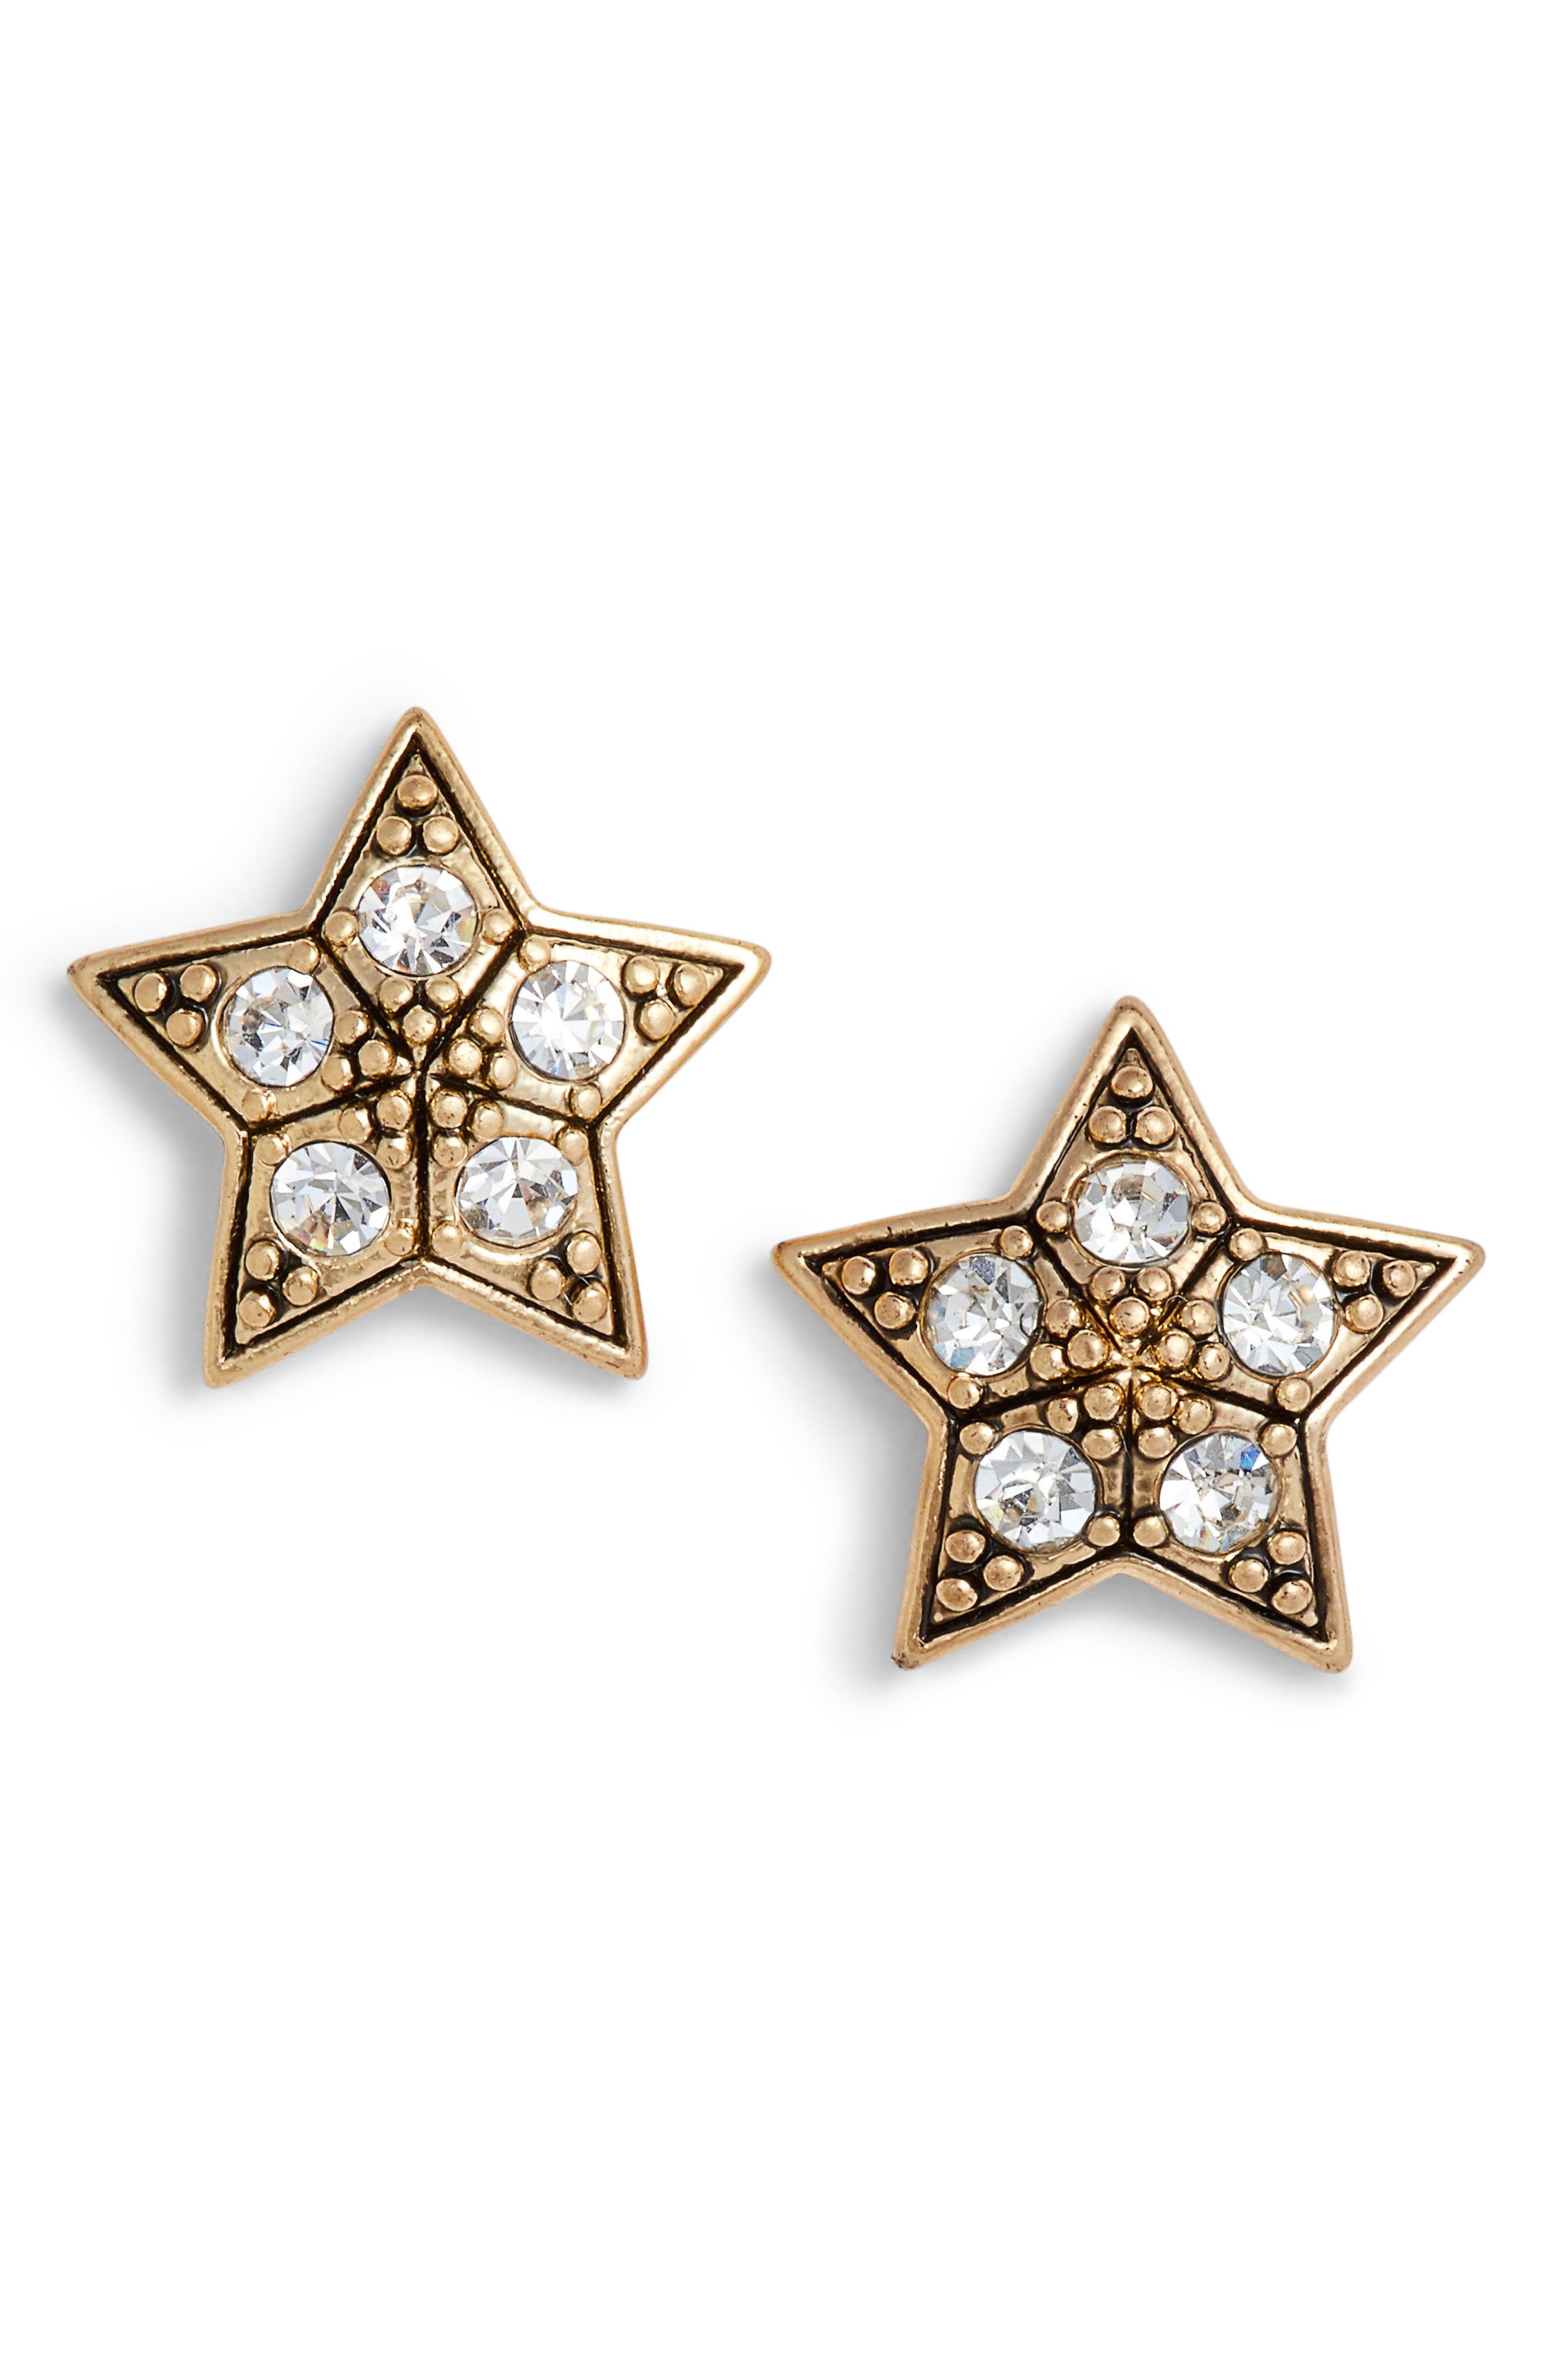 Star Stud Earrings,                             Main thumbnail 1, color,                             710